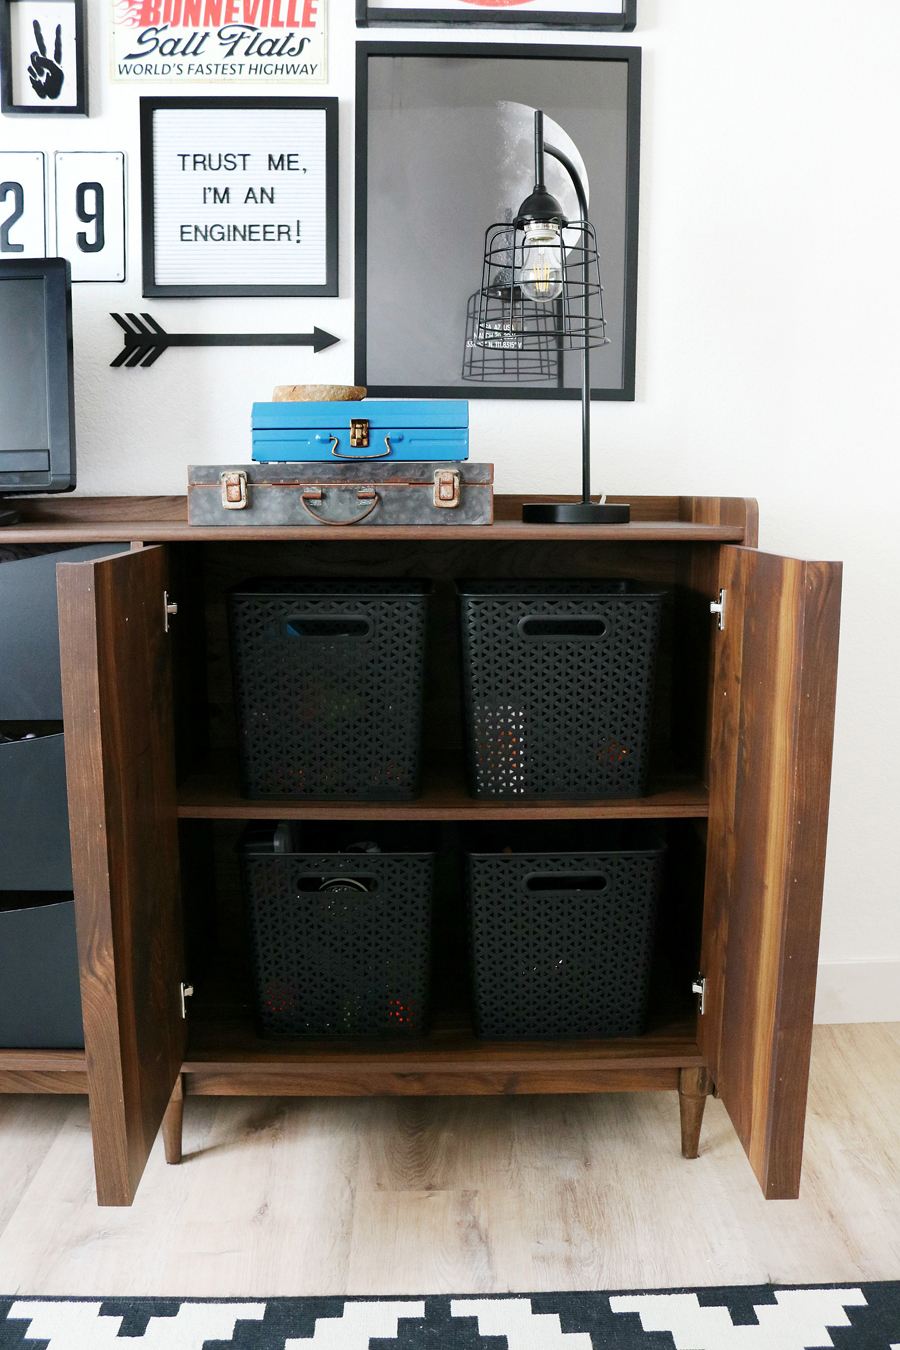 Teen Boy's Room Storage Solutions - Better Homes & Gardens Montclair TV Stand has so much great storage.